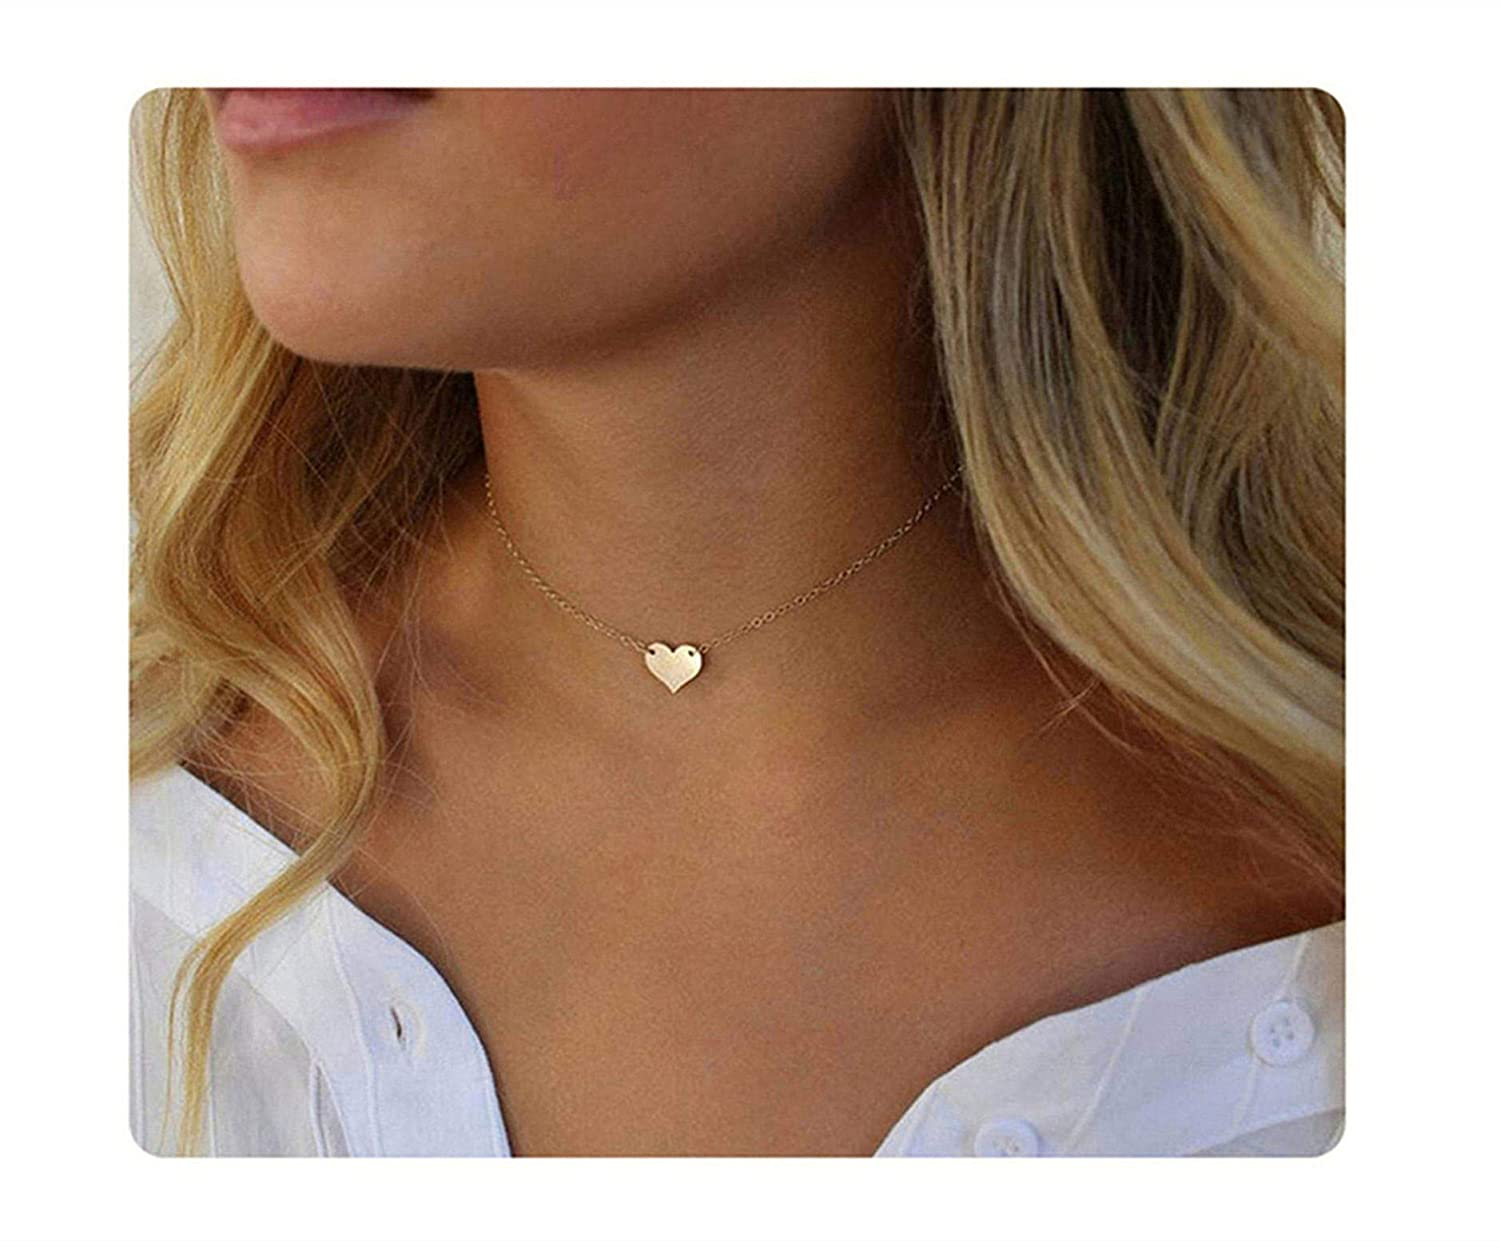 5cc9e6dd3ac S.J JEWELRY Fremttly Womens Simple Delicate Handmade 14K Gold Filled/Rose  Gold/Silver Simple Delicate Heart and Bar Chokers Necklace